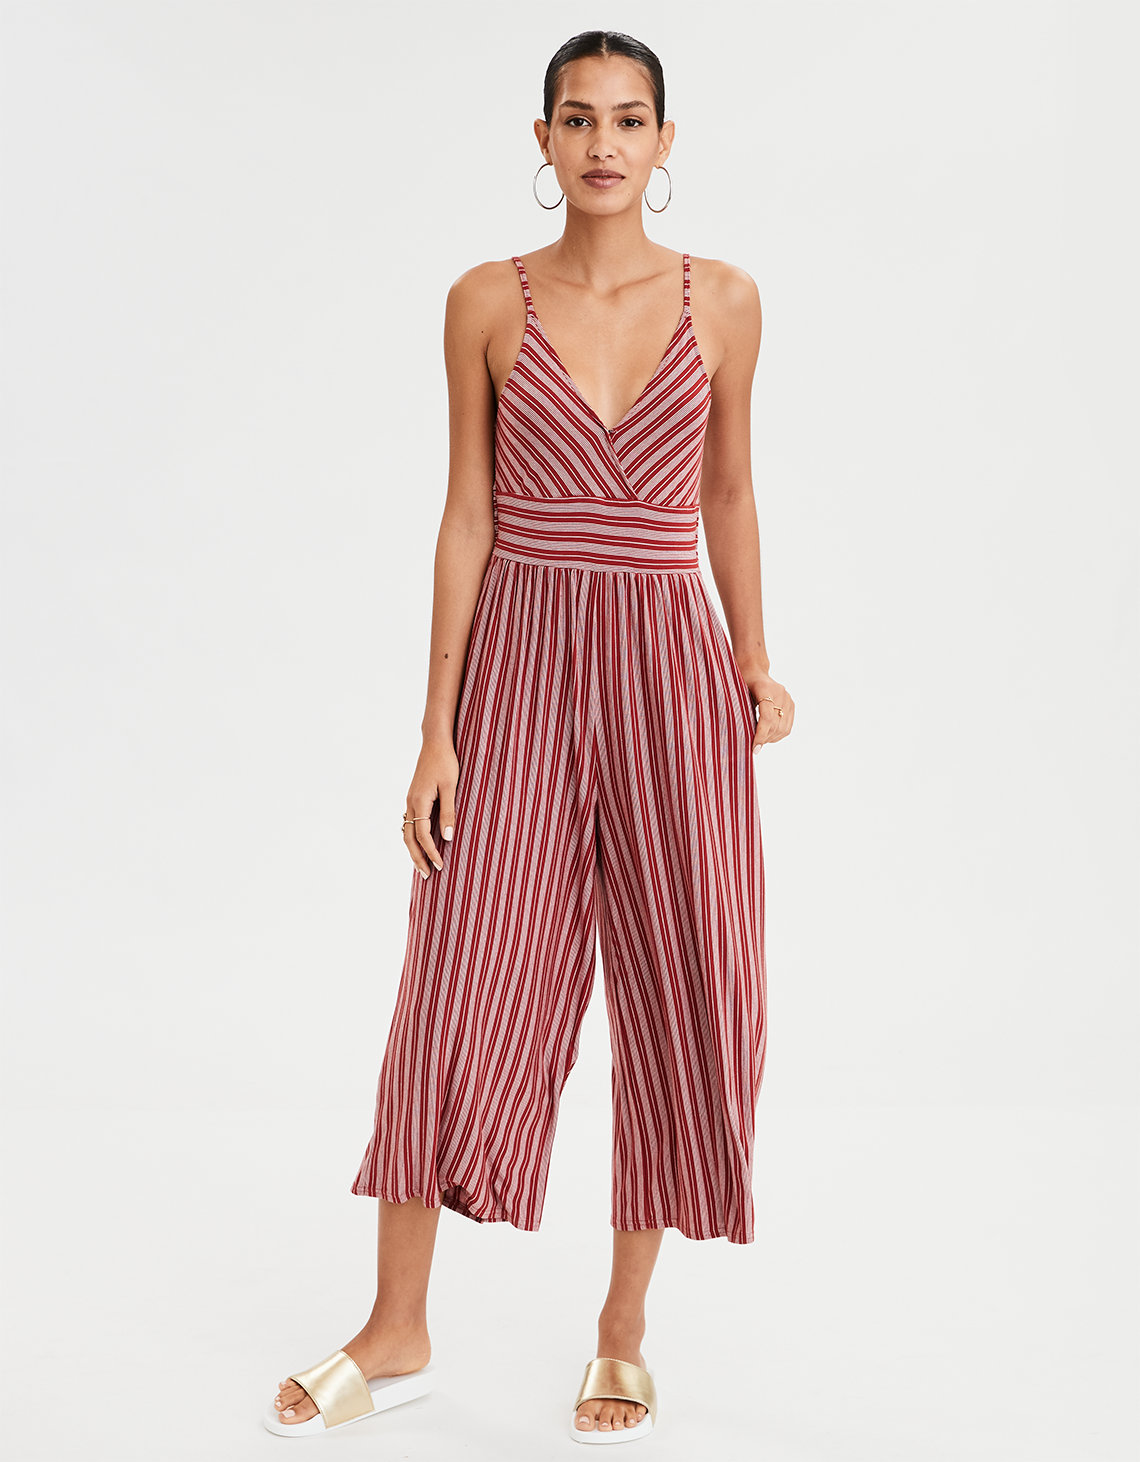 cefc1533f89 AE Striped Knit Jumpsuit. Placeholder image. Product Image